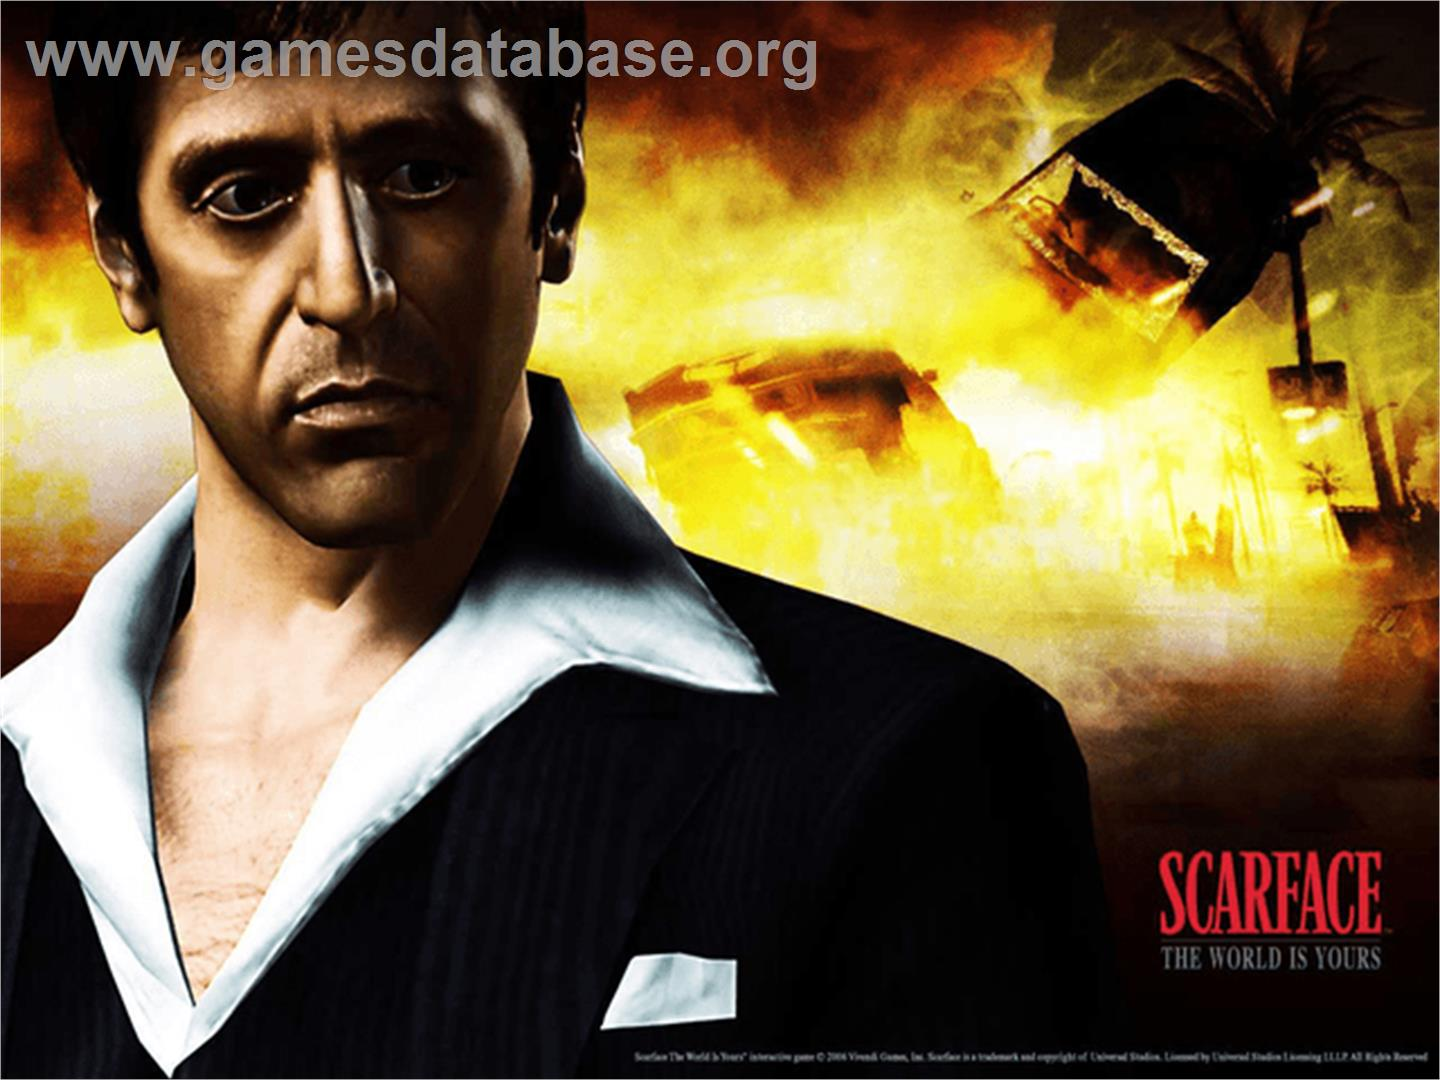 Scarface: The World is Yours - Microsoft Xbox - Artwork - Title Screen